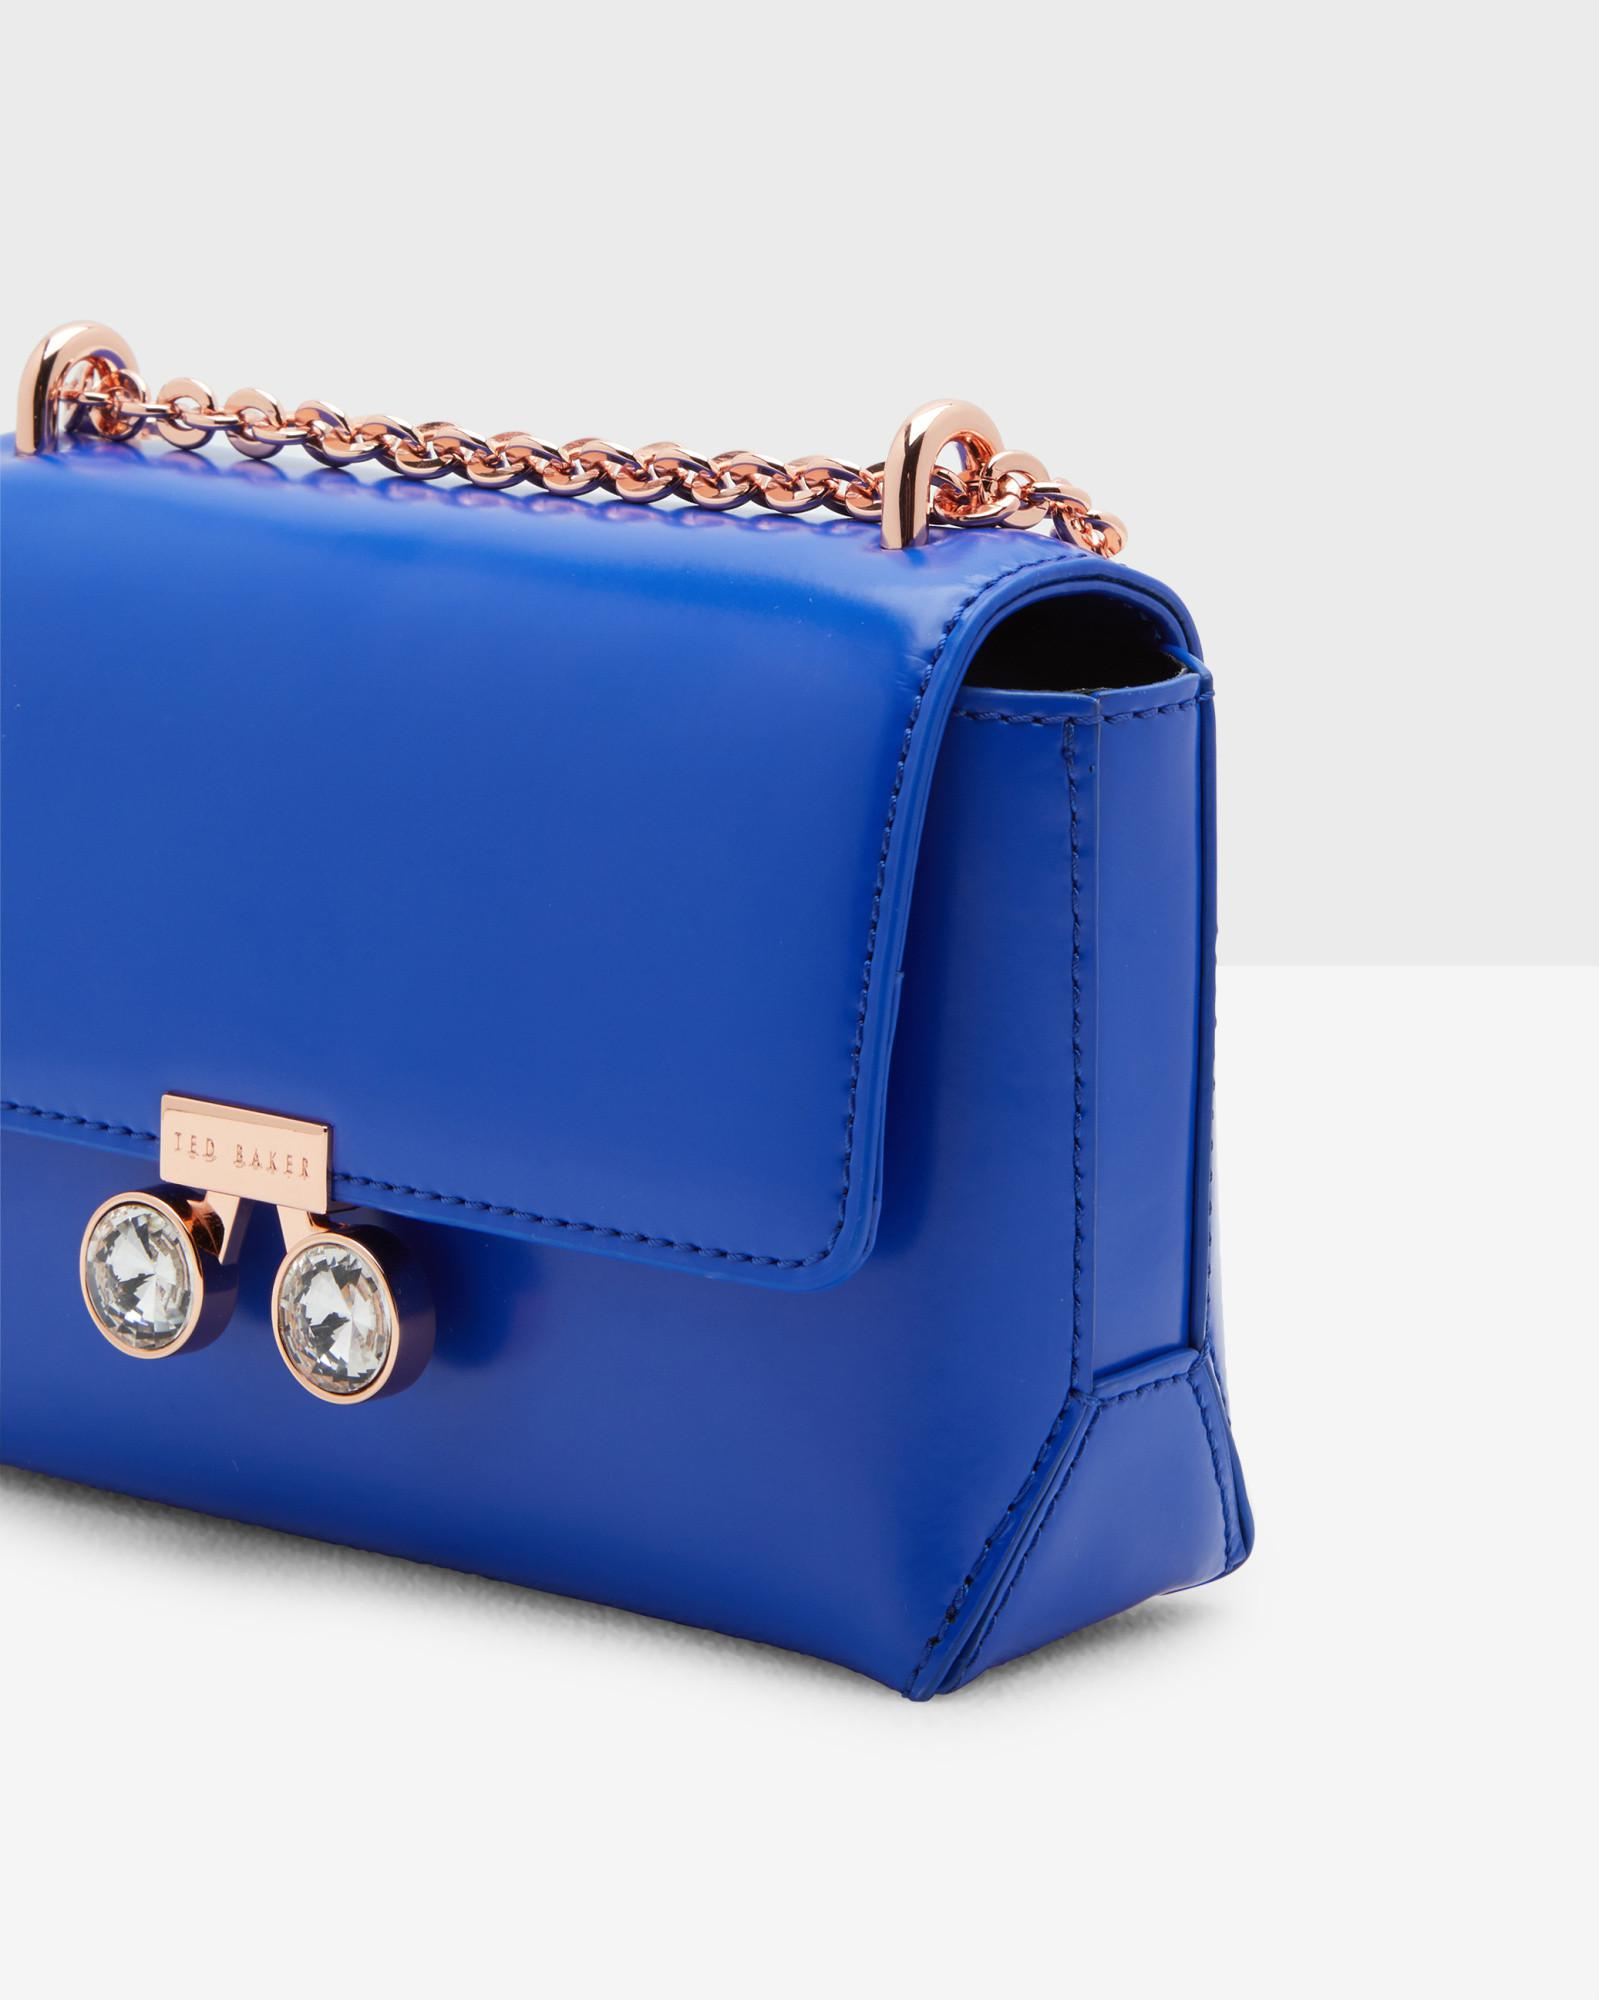 f7d731eb1f847 Ted Baker - Blue Crystal Bobble Leather Cross Body Bag - Lyst. View  fullscreen